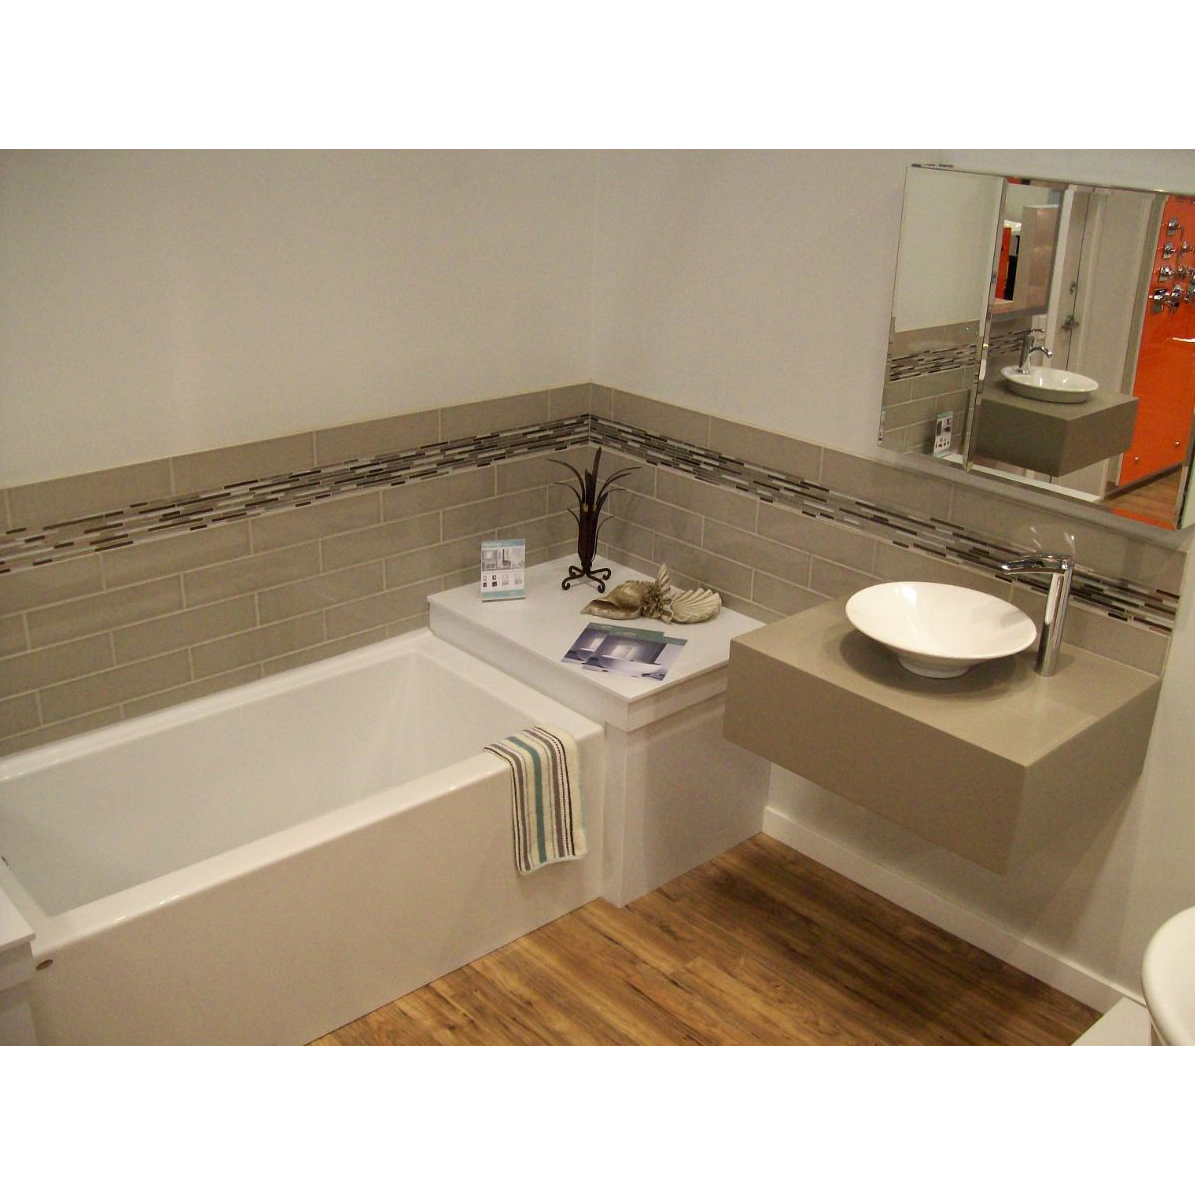 The Ensuite Bath & Kitchen Showroom